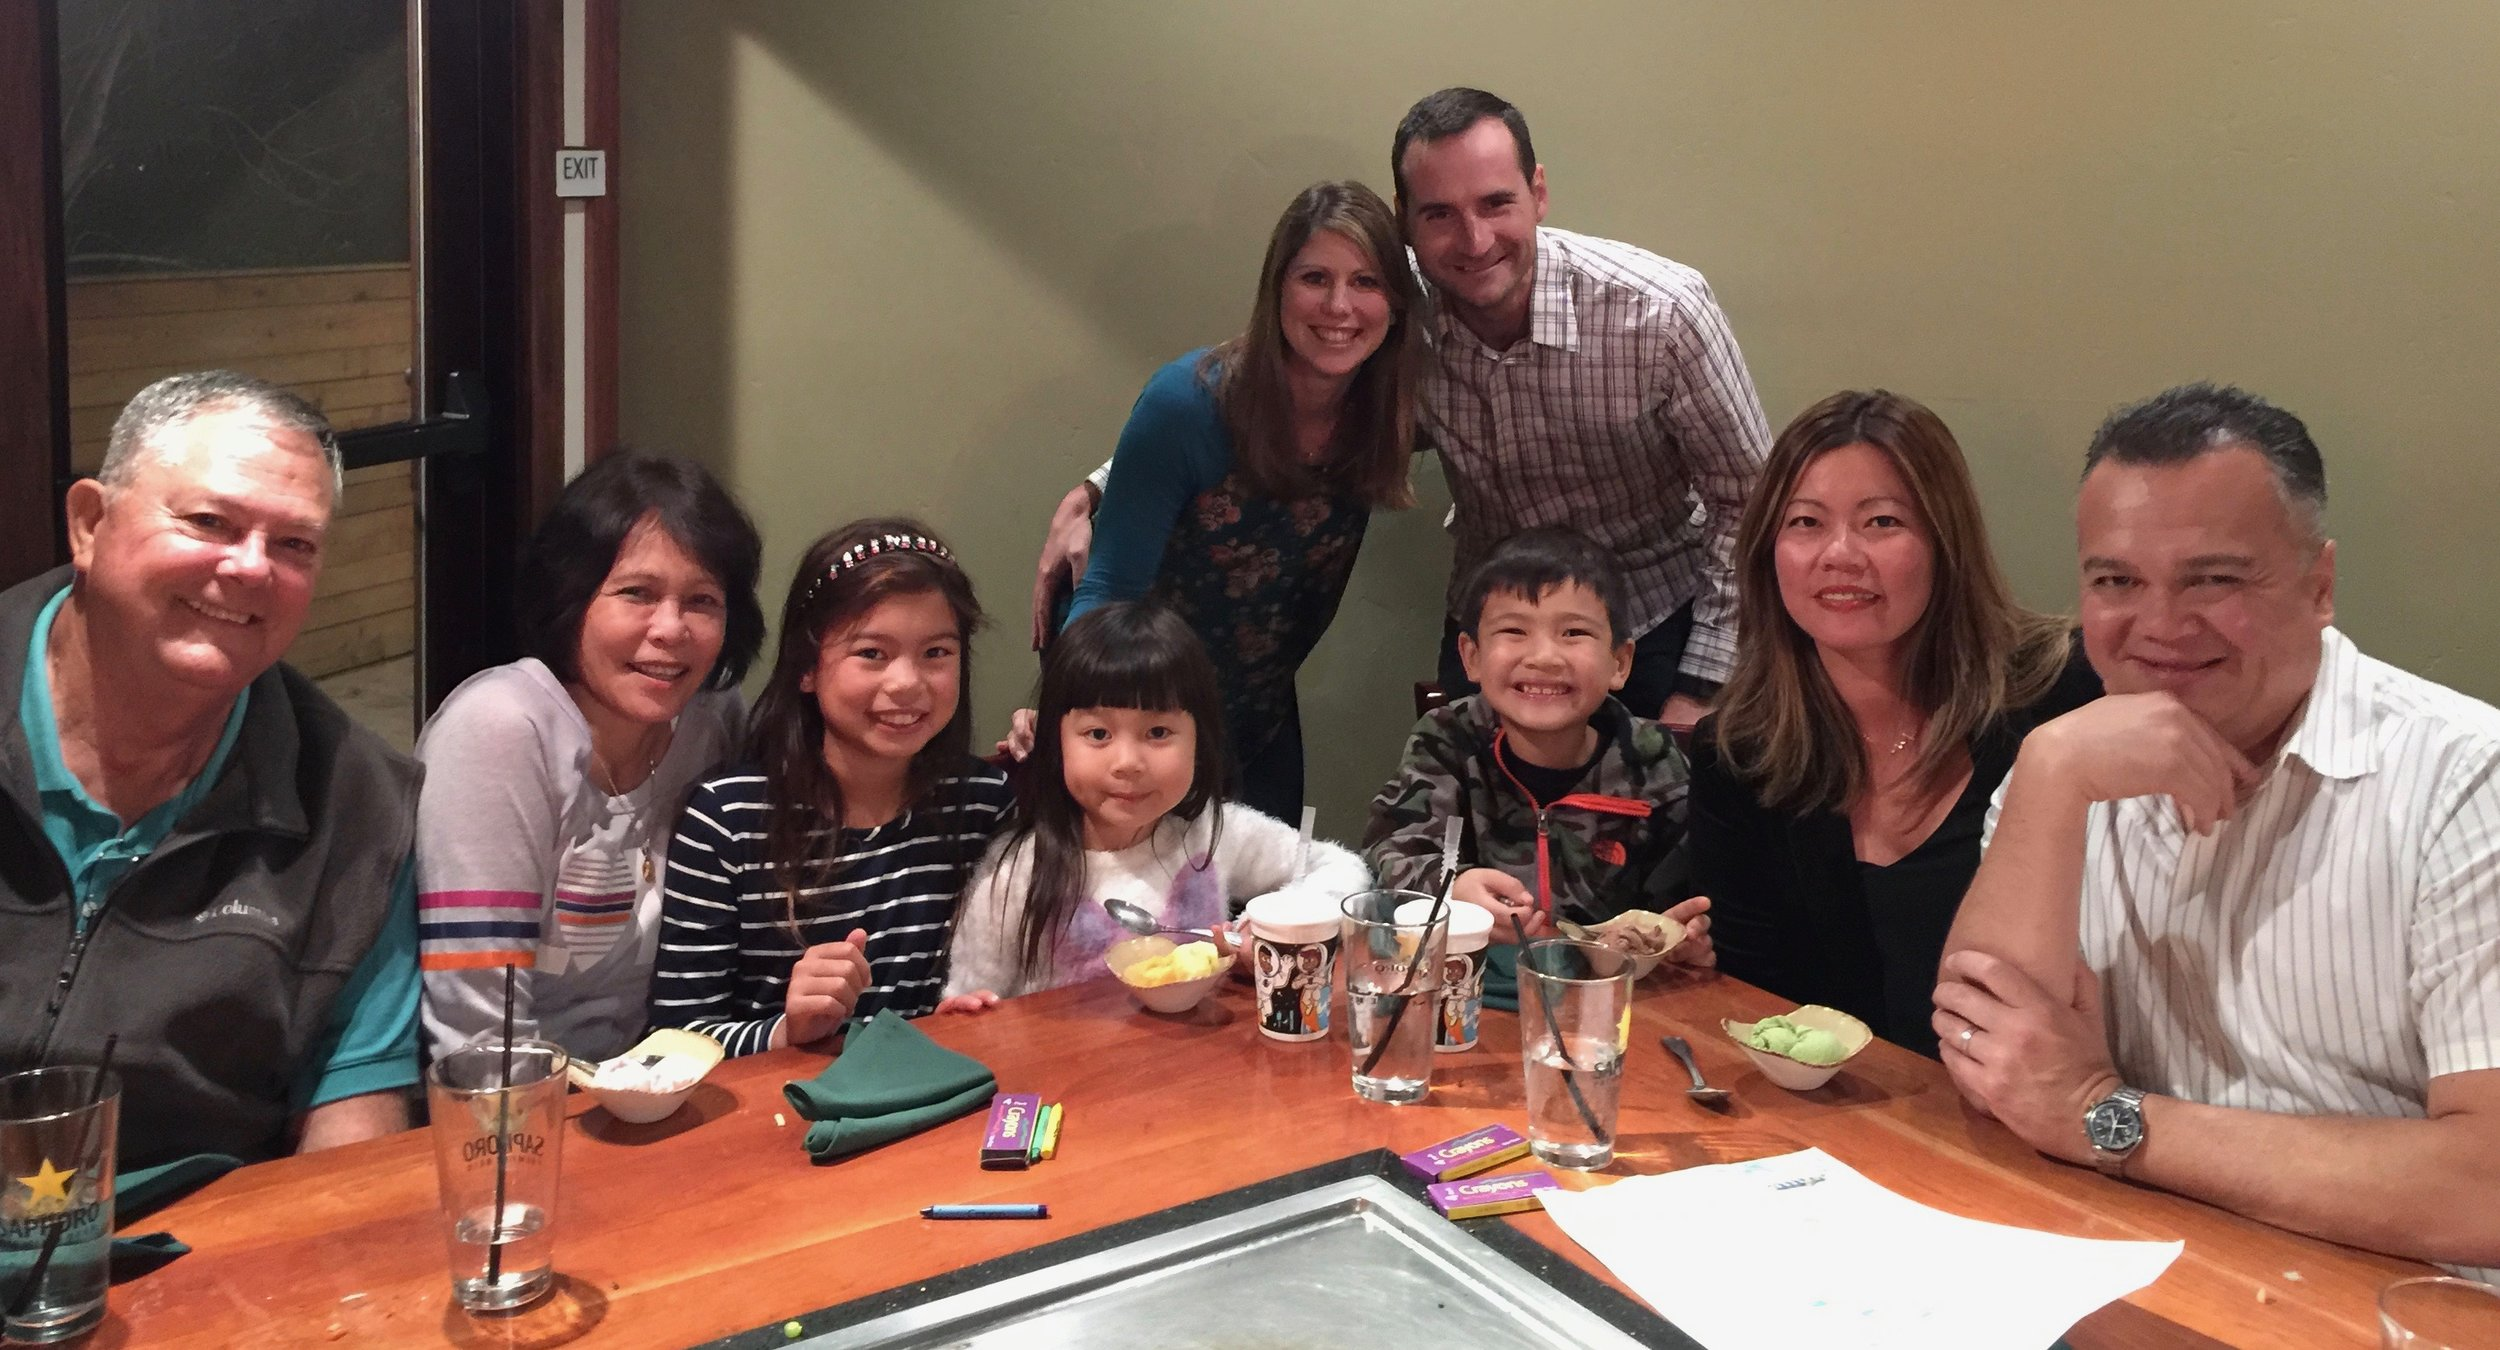 This was us on Saturday night with the family. We went to a local Teppanyaki restaurant and the couple in the back sat at our table. Prior to seating, they were complete strangers. By the end of the meal, we were friends and they too joined Patricia for her birthday. Fun night.